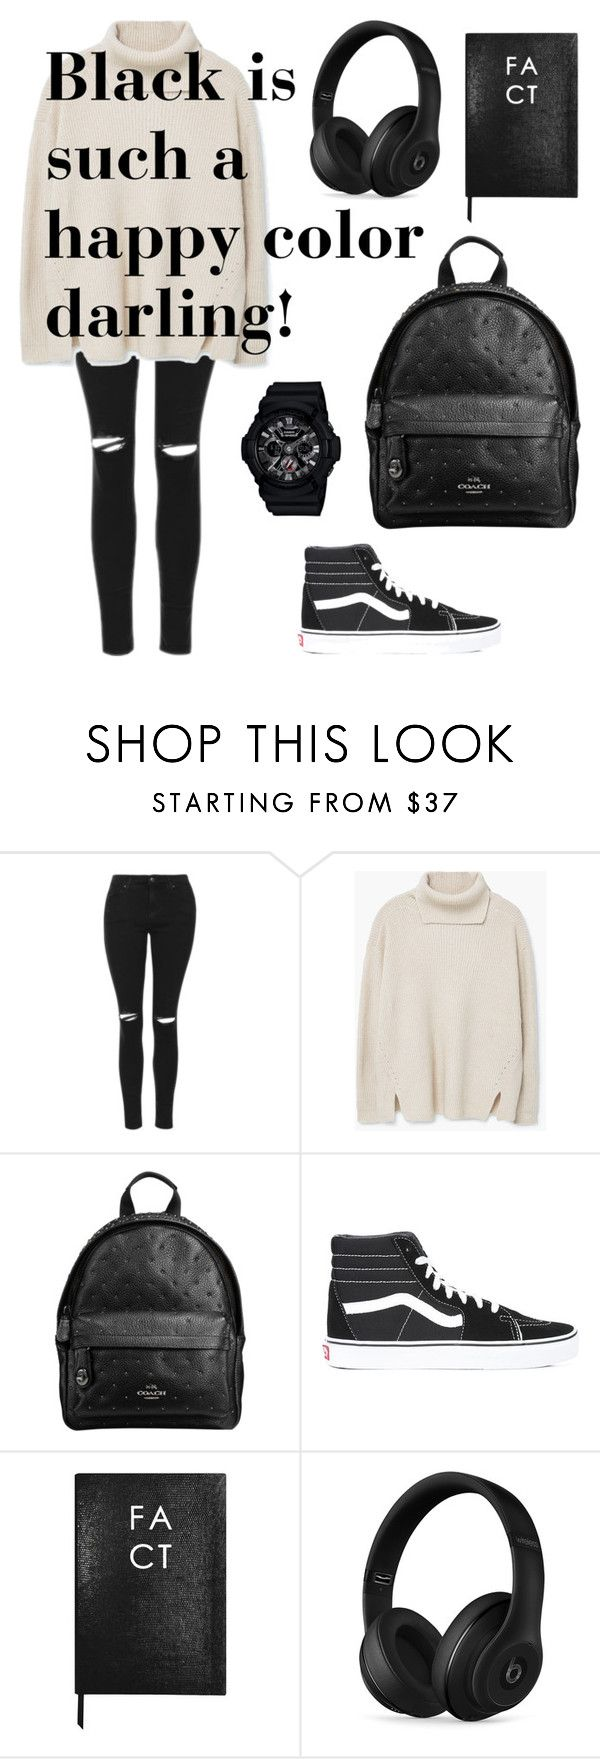 """Black is such a happy color darling!"" by arrummustika on Polyvore featuring Topshop, MANGO, Coach, Vans, Sloane Stationery, Beats by Dr. Dre and Baby-G"